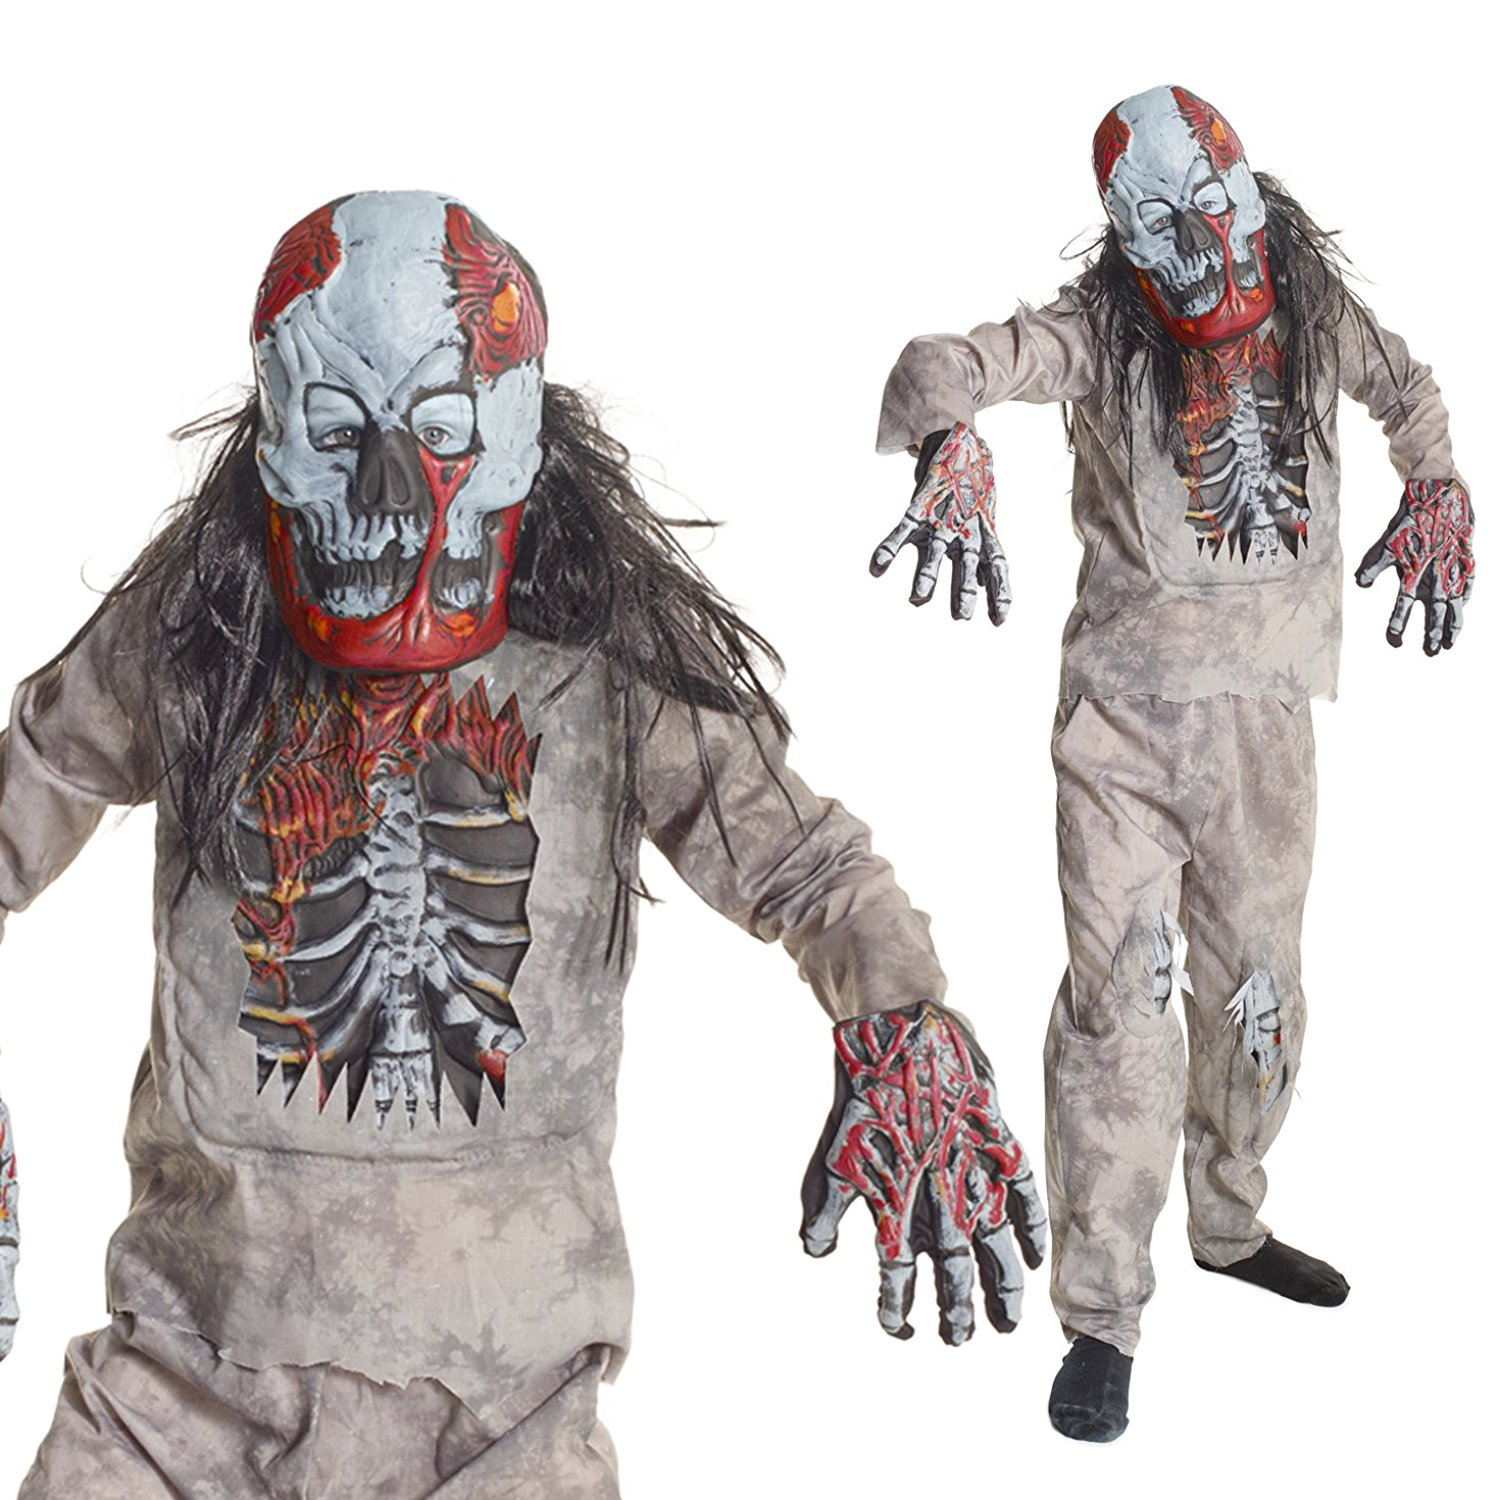 Boys Infected Zombie Skeleton Fancy Dress Costume - 4 Piece Quality Costume